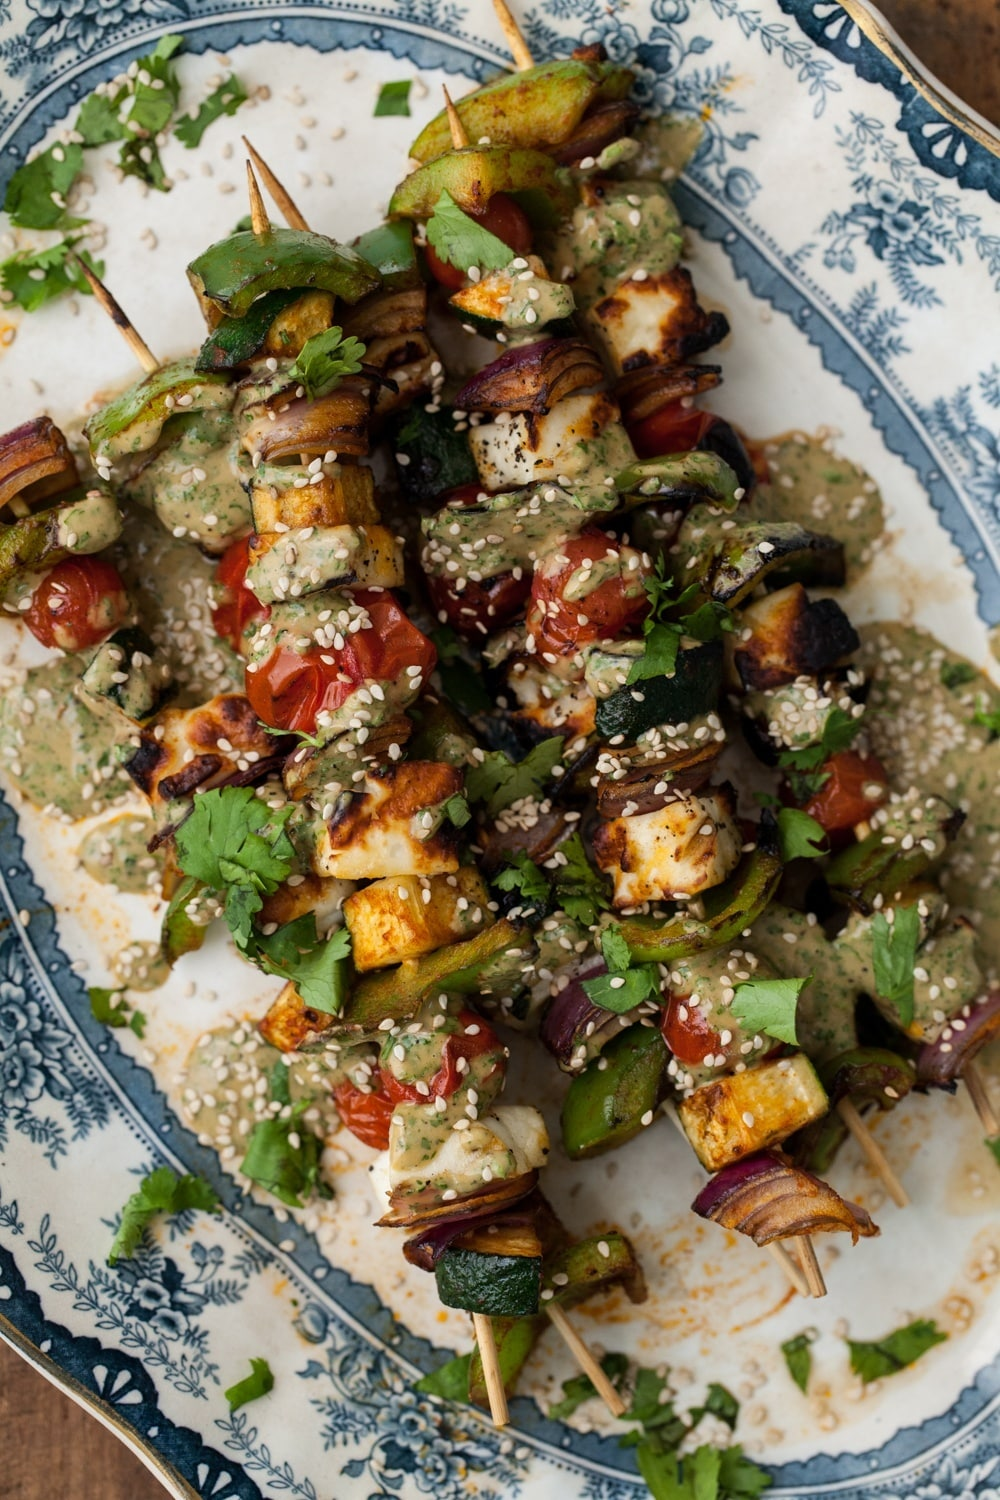 Grilled Halloumi Skewers with Cilantro-Tahini Sauce